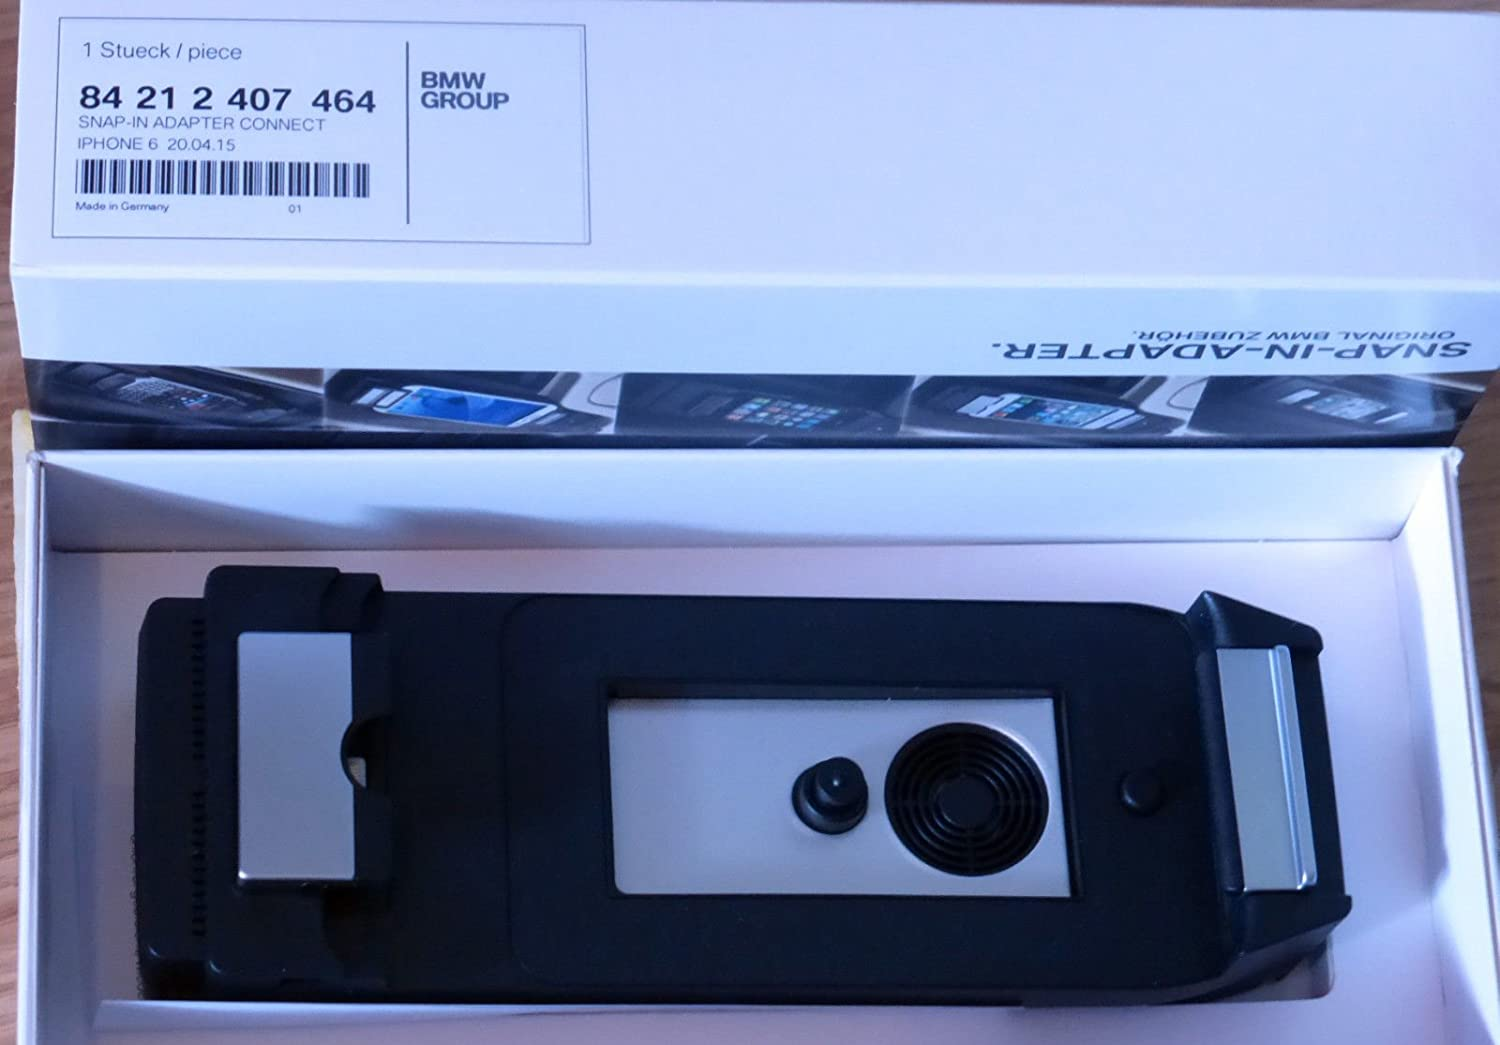 EuroActive BMW OEM Apple iPhone 6 Snap-in Adapter Connect F10 E90 F06 F01  F30 F32 F12 F33 and More